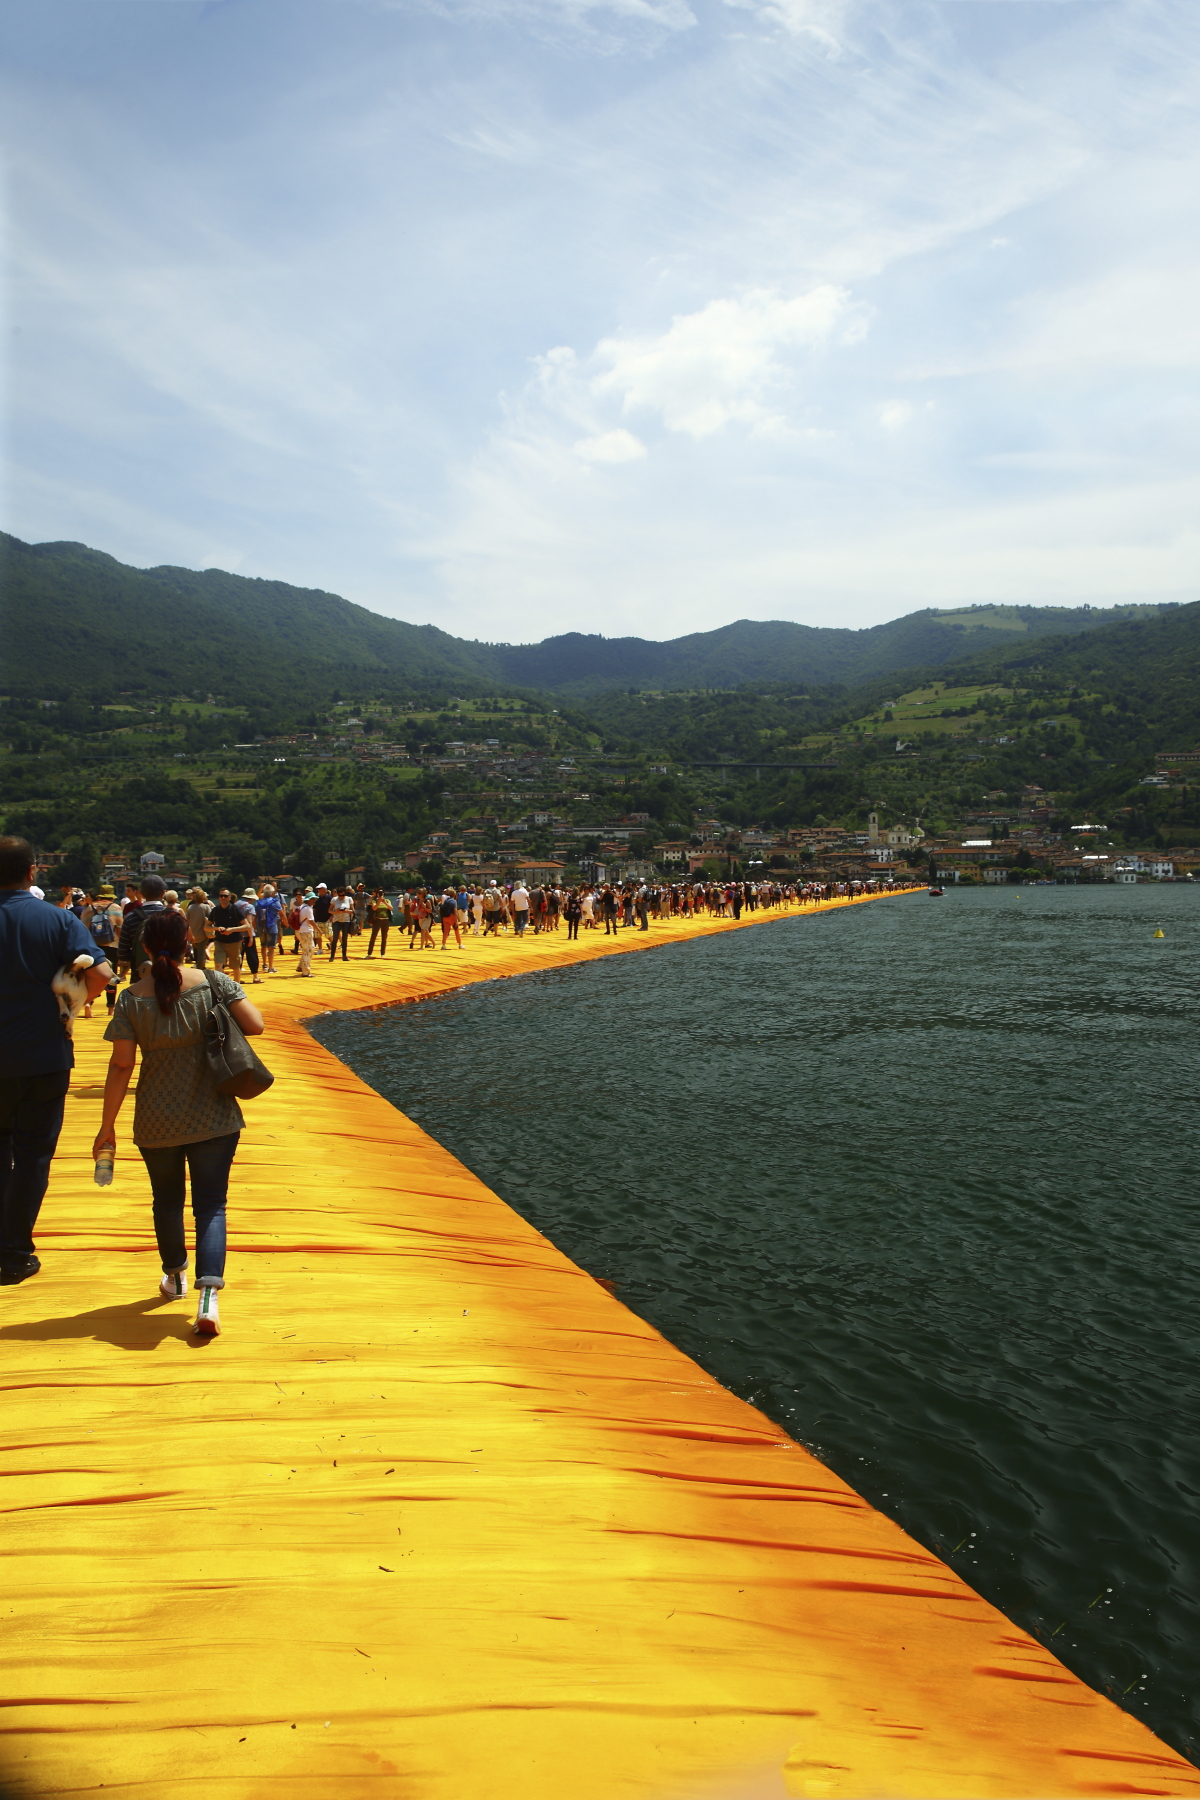 Christo Piers Project at Lake Isseo